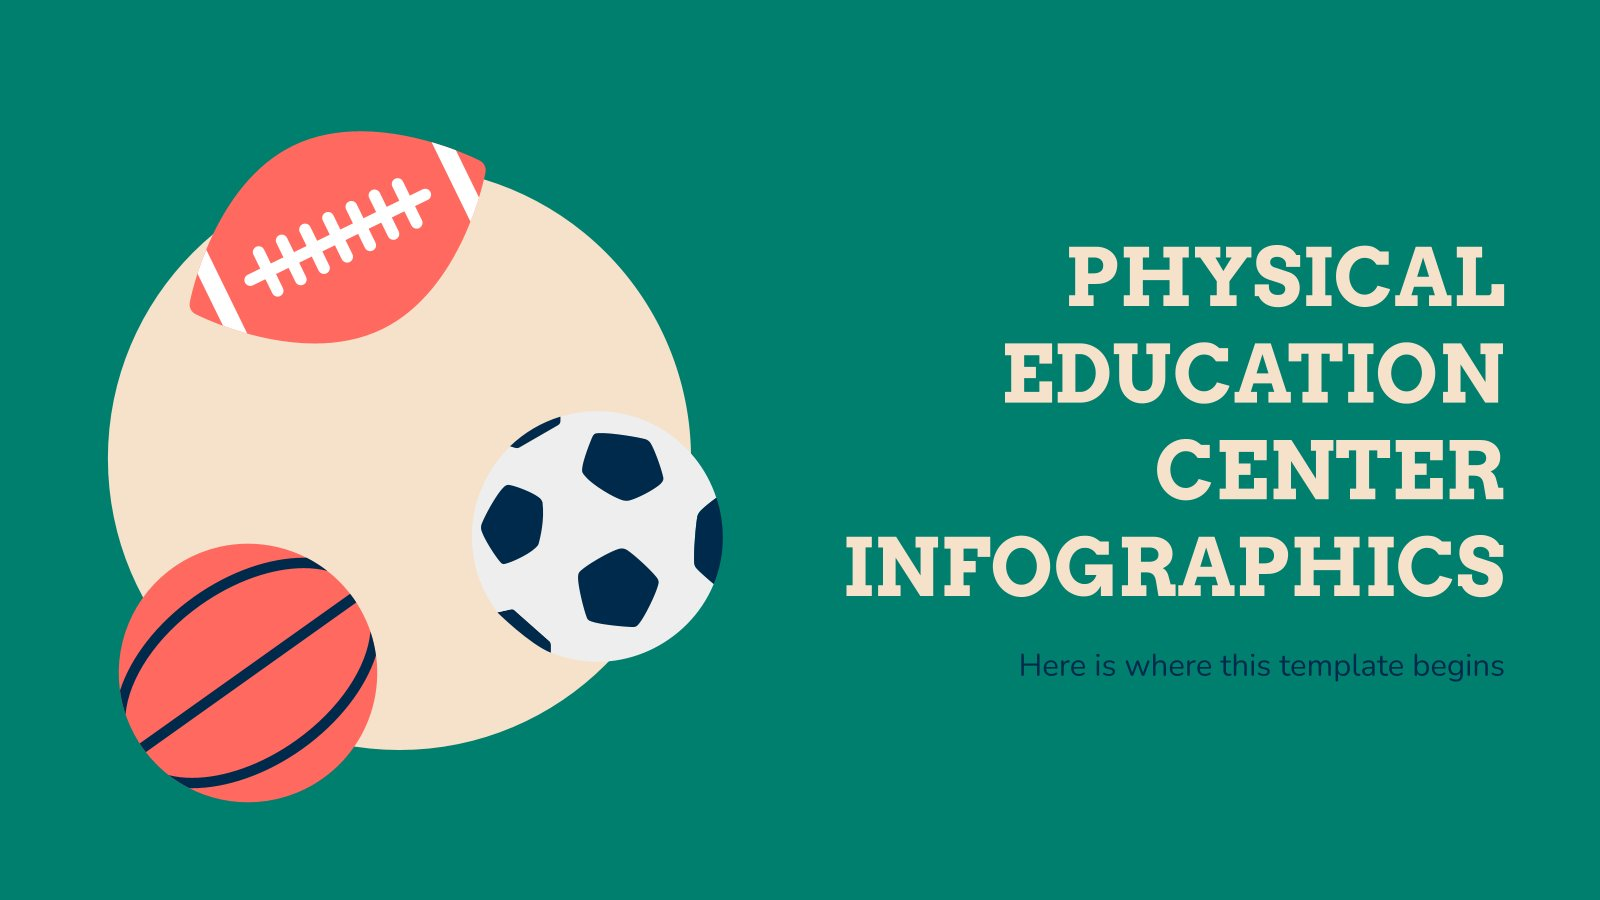 Physical Education Center Infographics presentation template